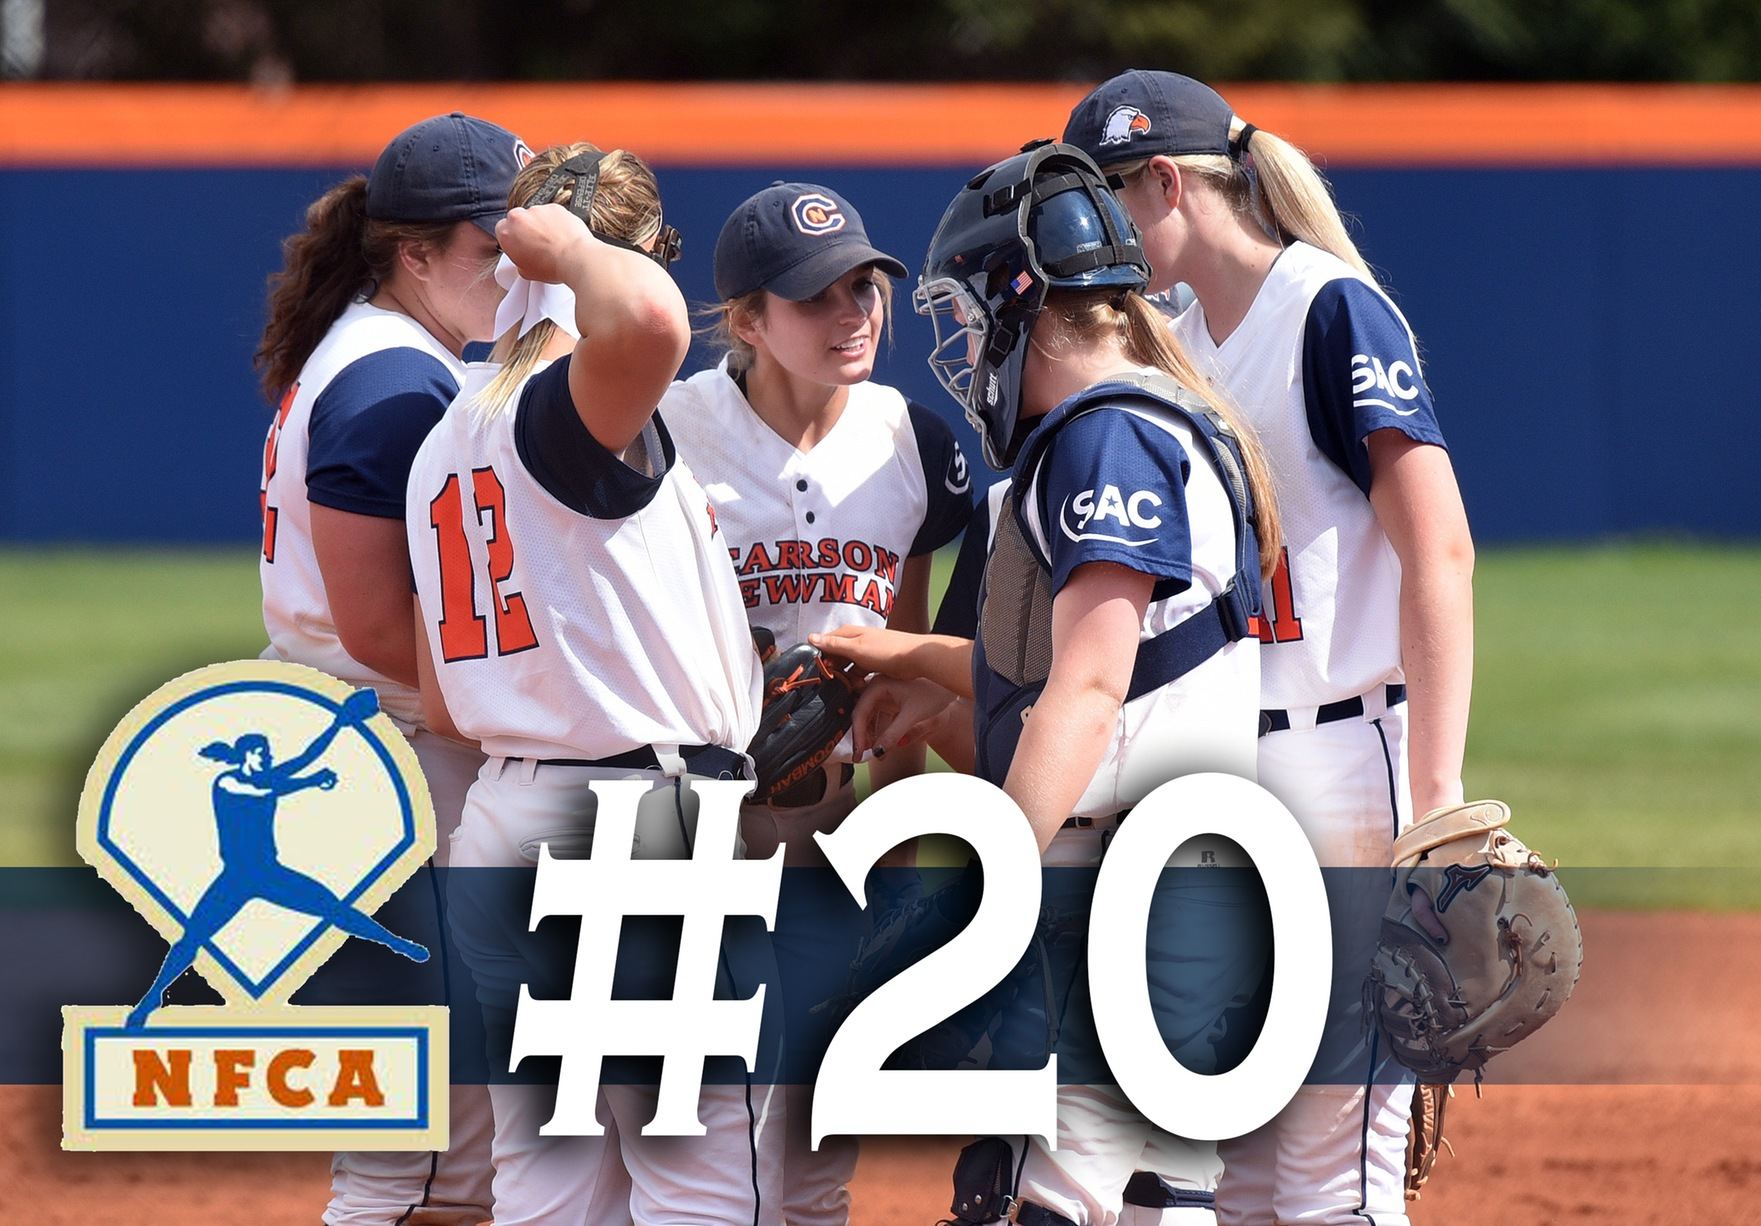 Carson-Newman softball starts 2018 ranked in NFCA top 20